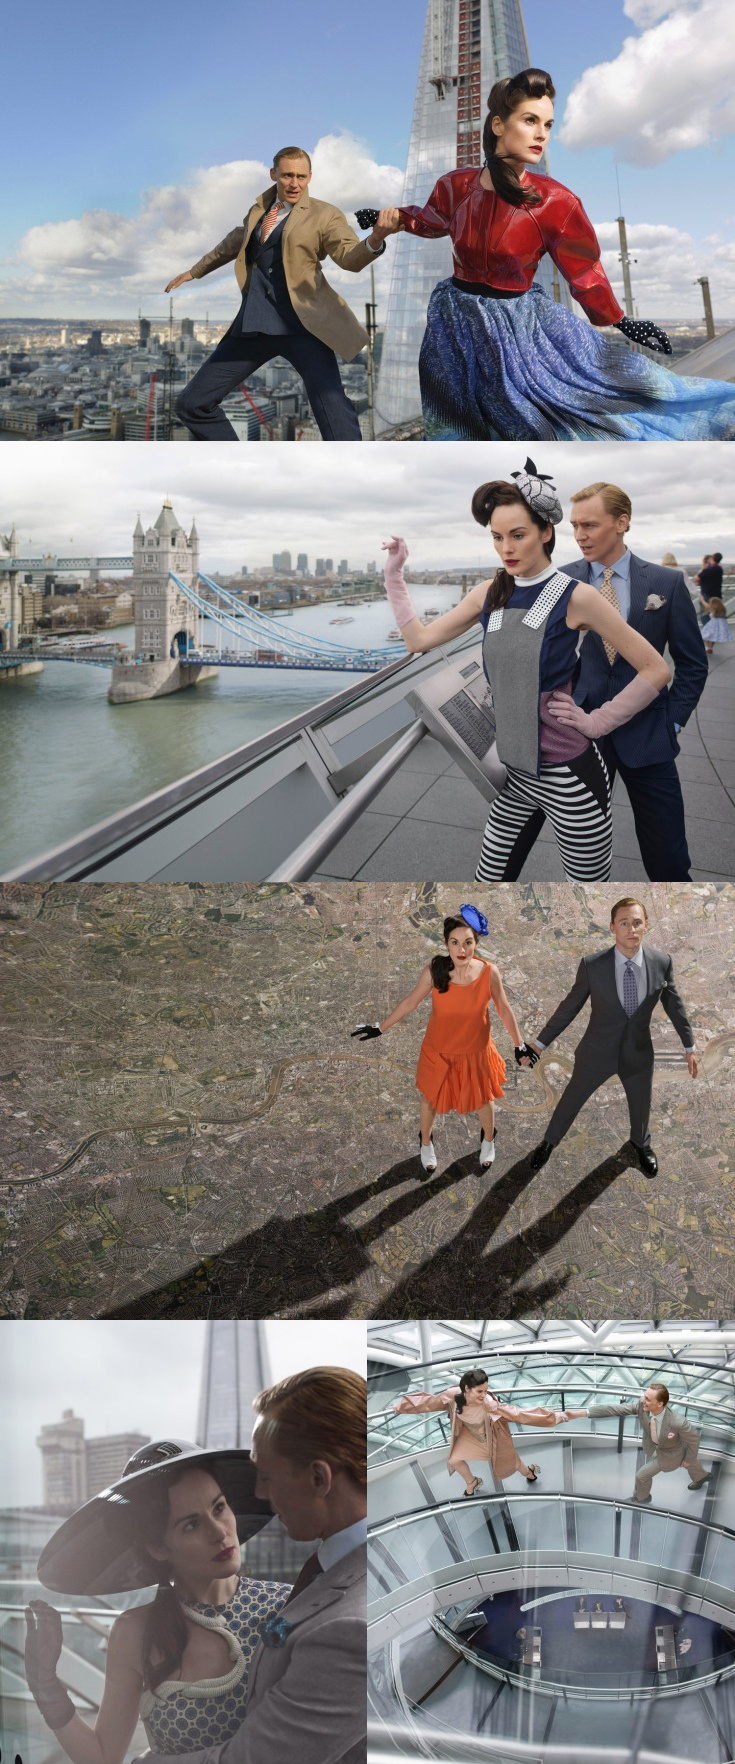 TIME Style and Design: Futuristic London Fashion - Michelle Dockery and Tom Hiddleston